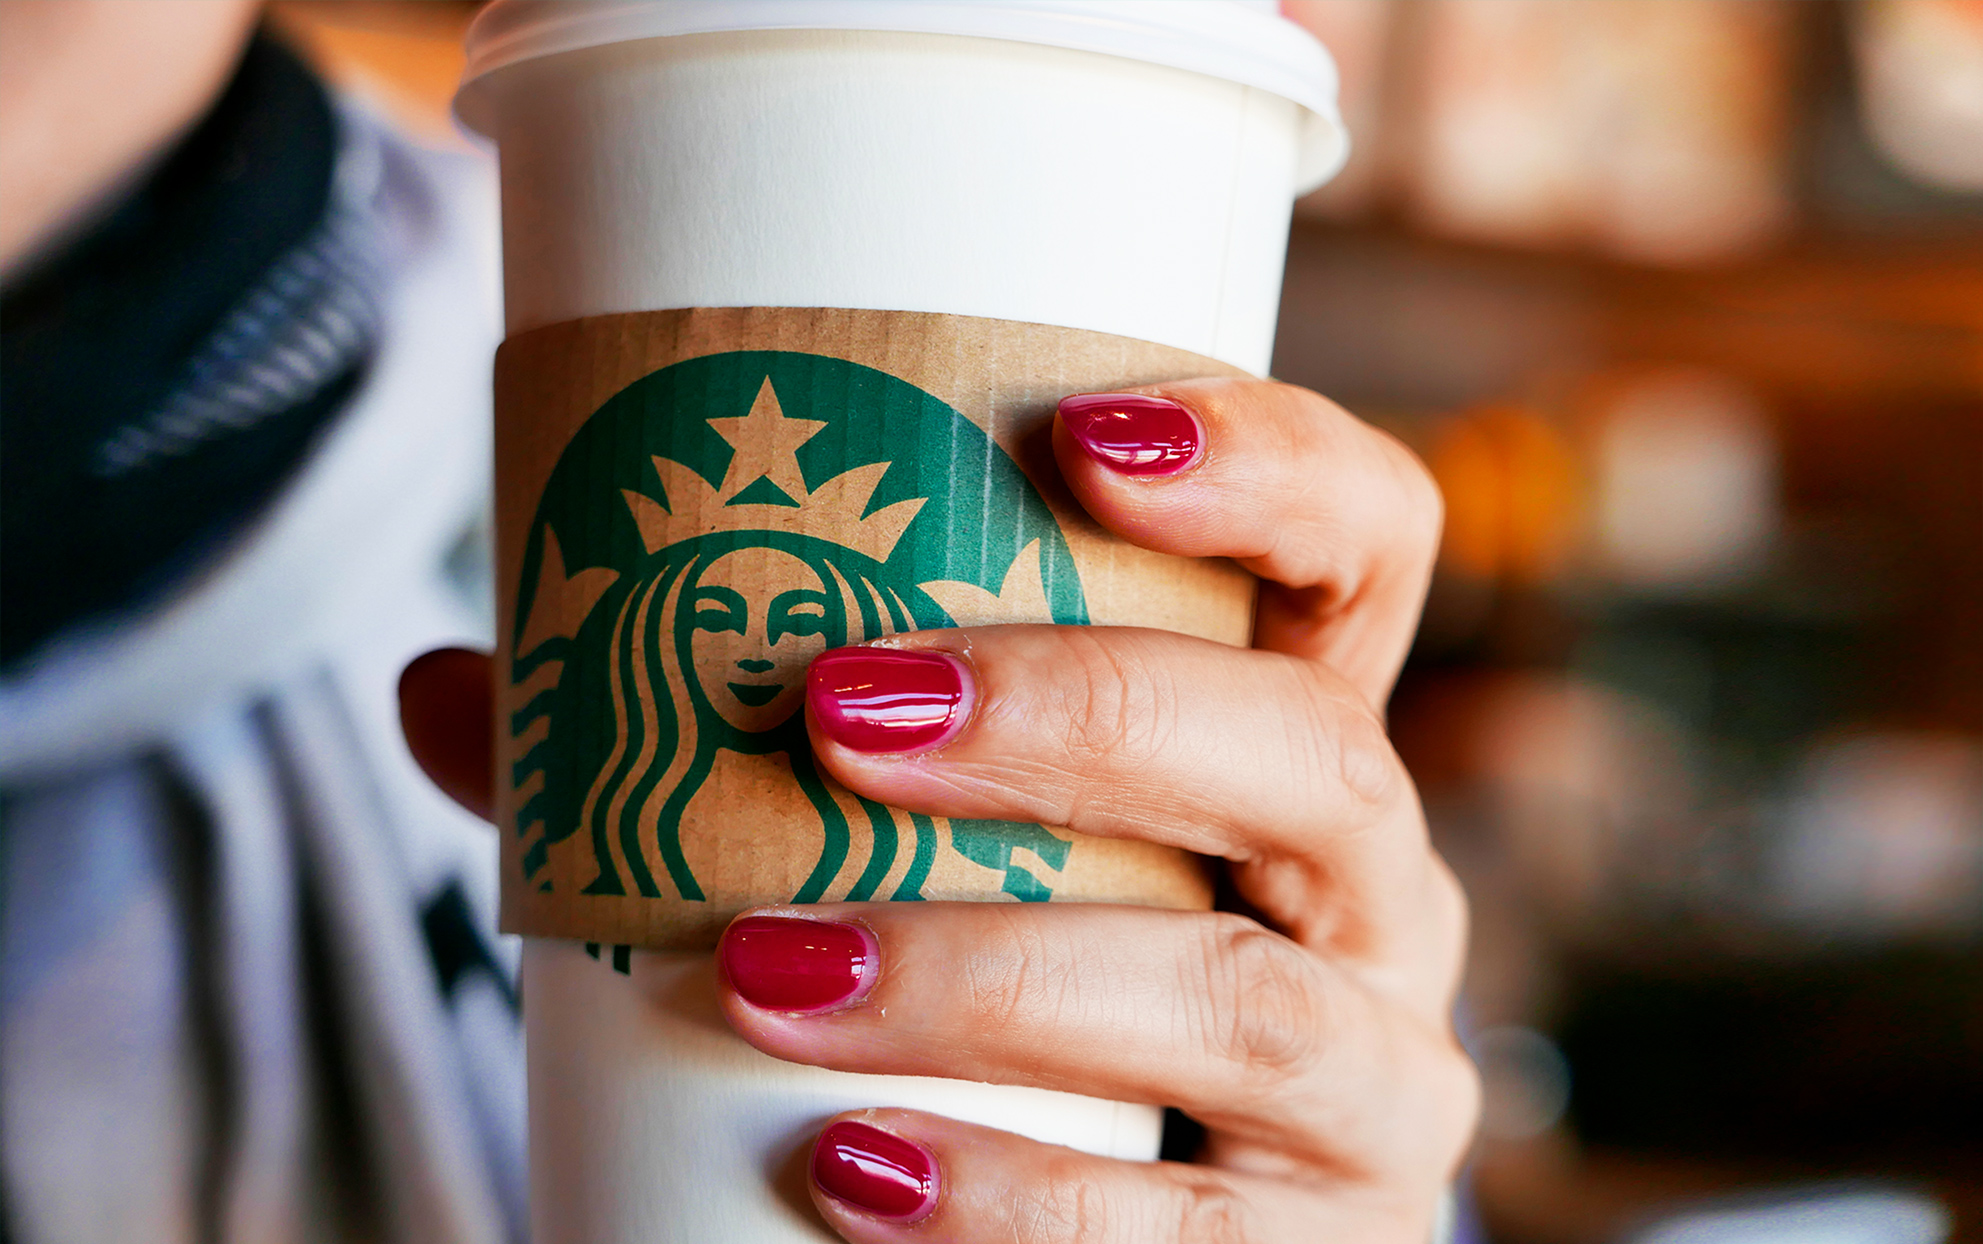 Starbucks Is Offering Buy One, Get One on Drinks